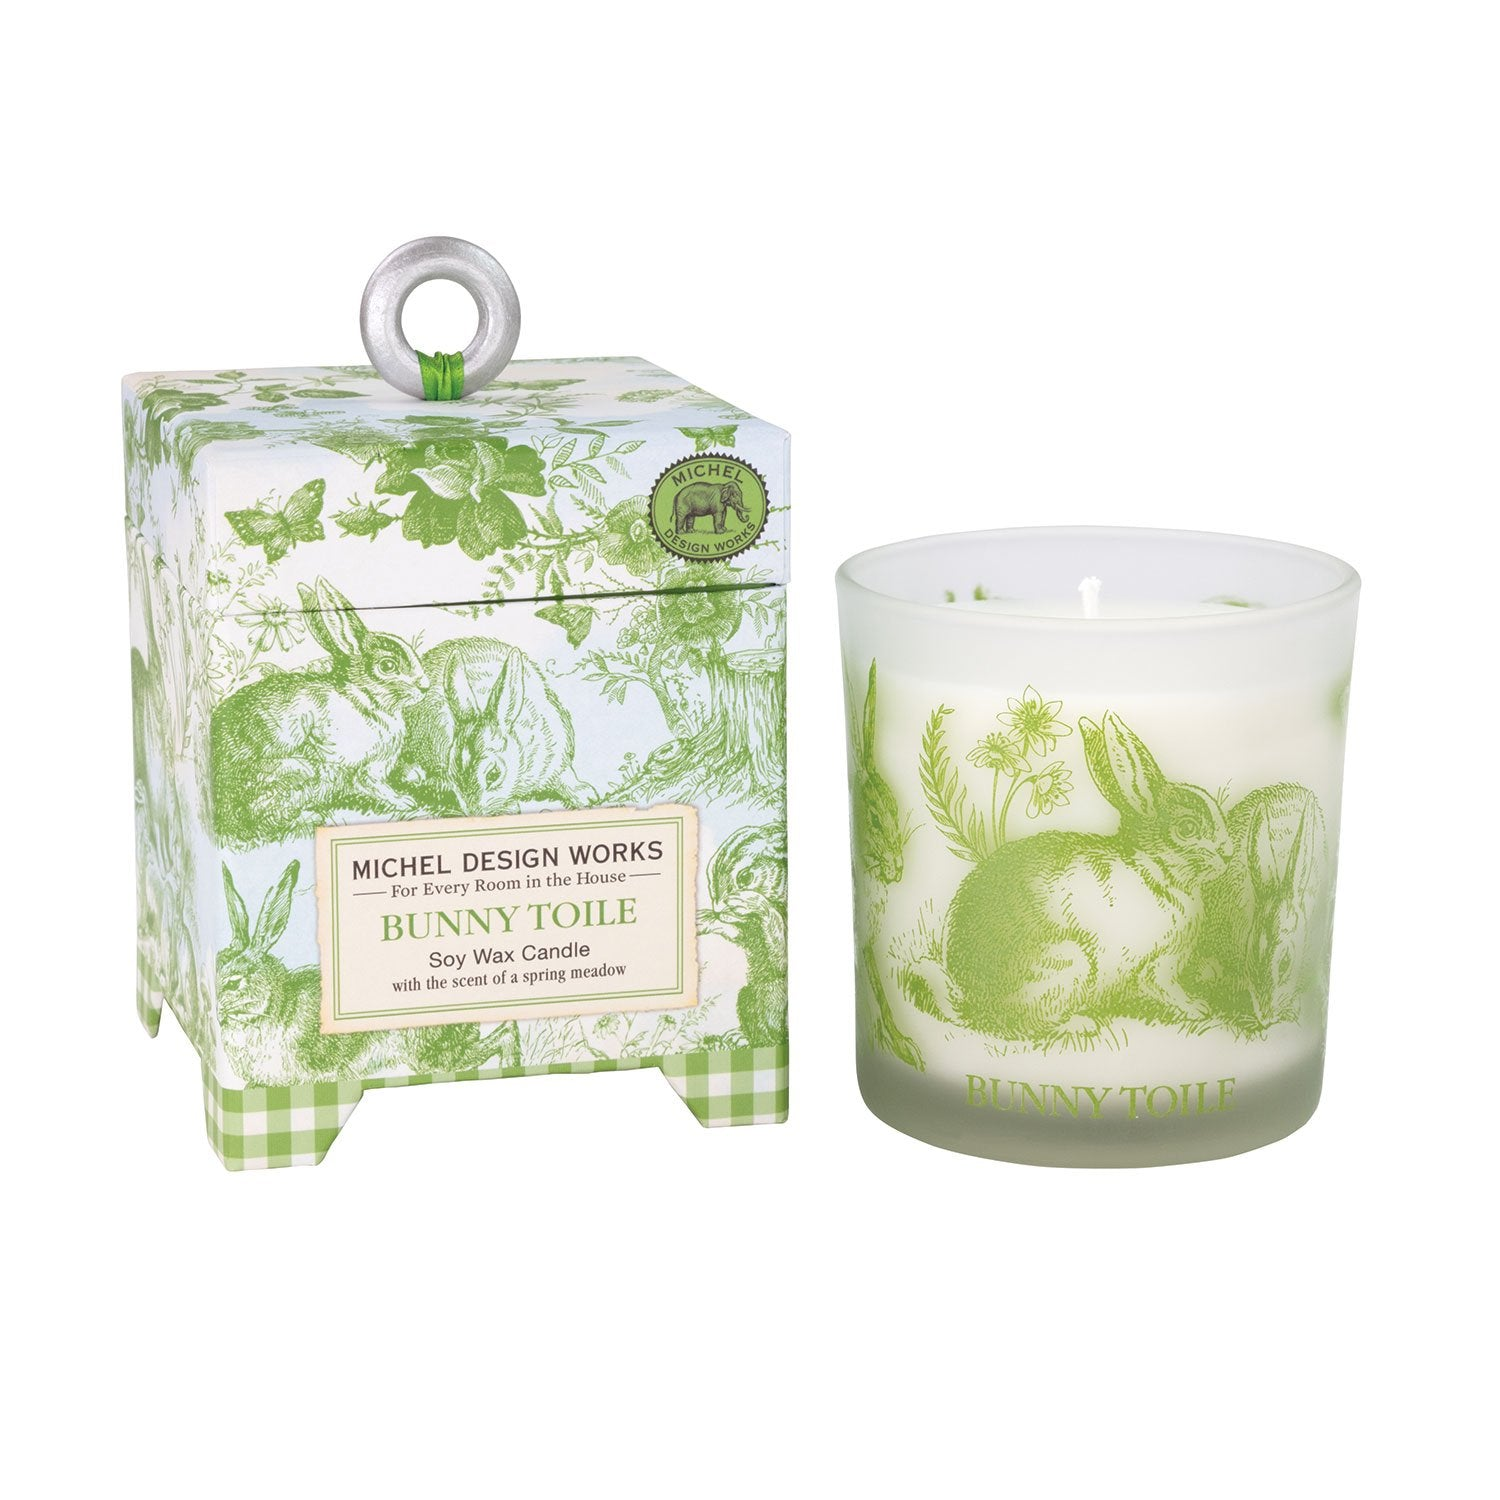 Bunny Toile 6.5 oz. Soy Wax Candle